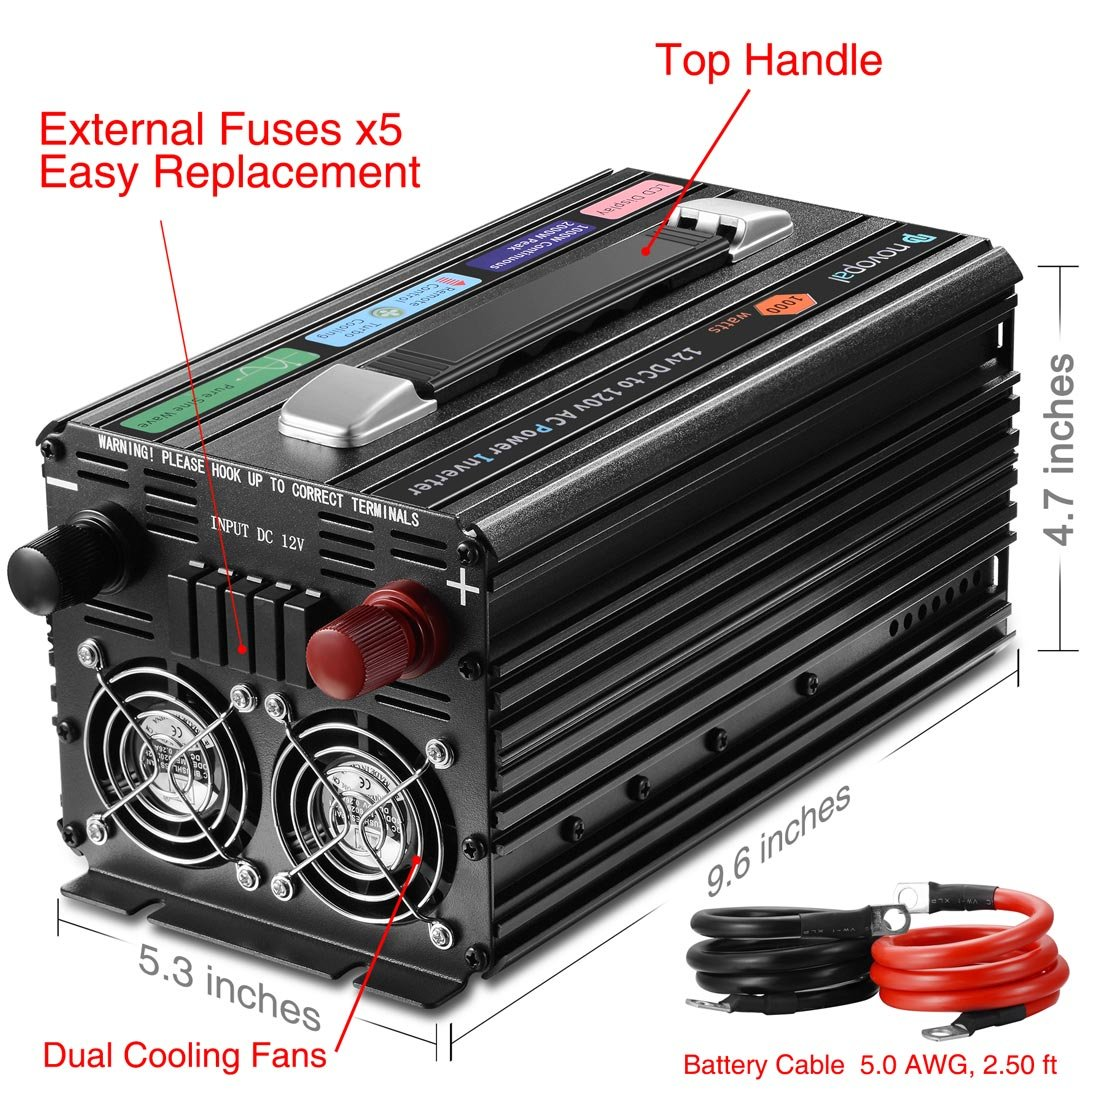 Surge 4000W Big LCD Display Novopal Power Inverter Pure Sine Wave Power Inverter 2000 Watt 3 AC Outlets DC 12v to AC 120v with Remote Control